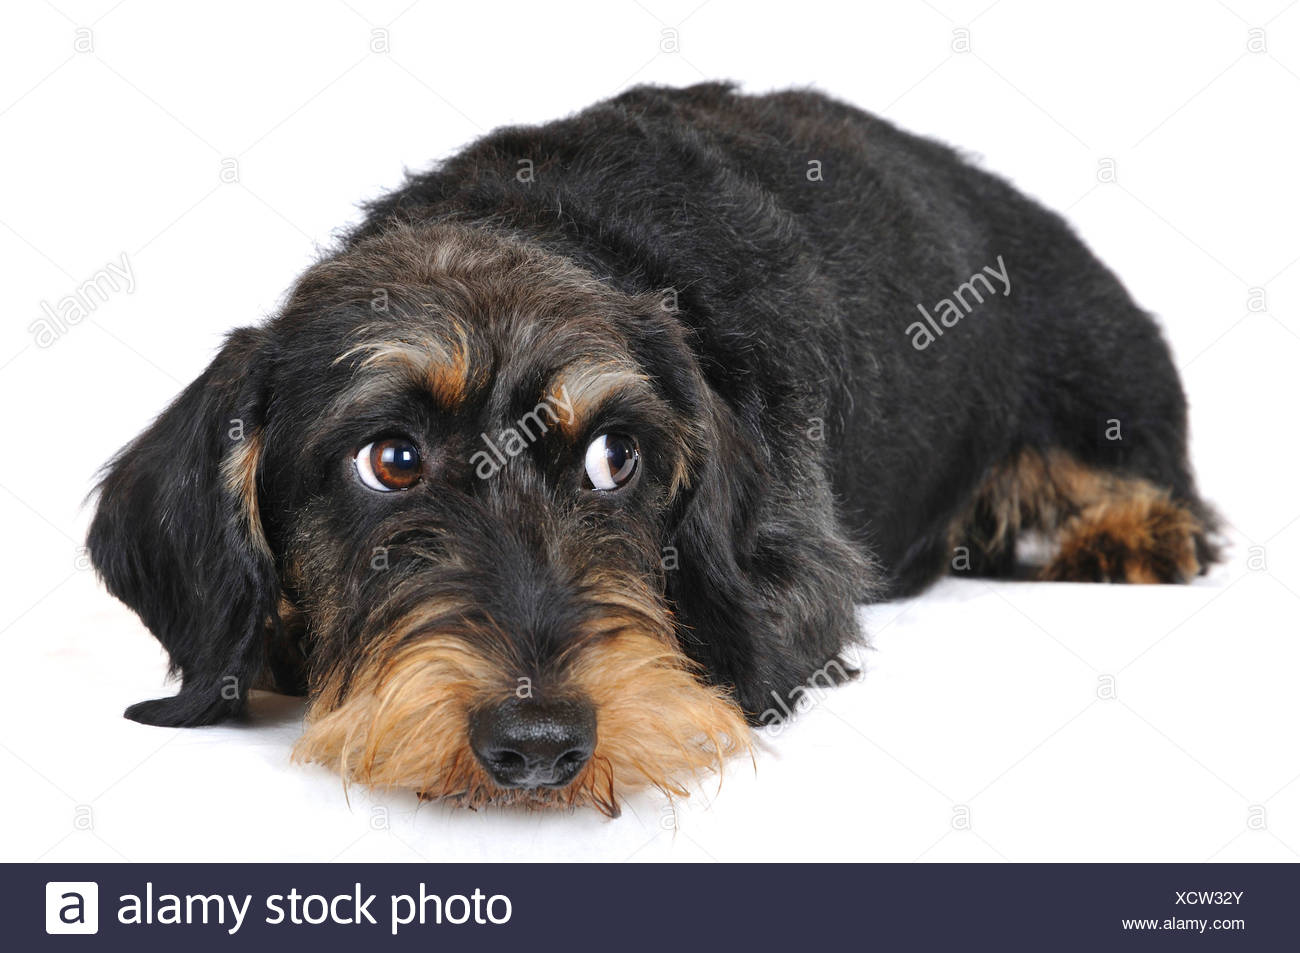 Wire-haired Dachshund, Wire-haired sausage dog, domestic dog (Canis lupus f. familiaris), side glance, Germany, Nordrhein Westfalen - Stock Image